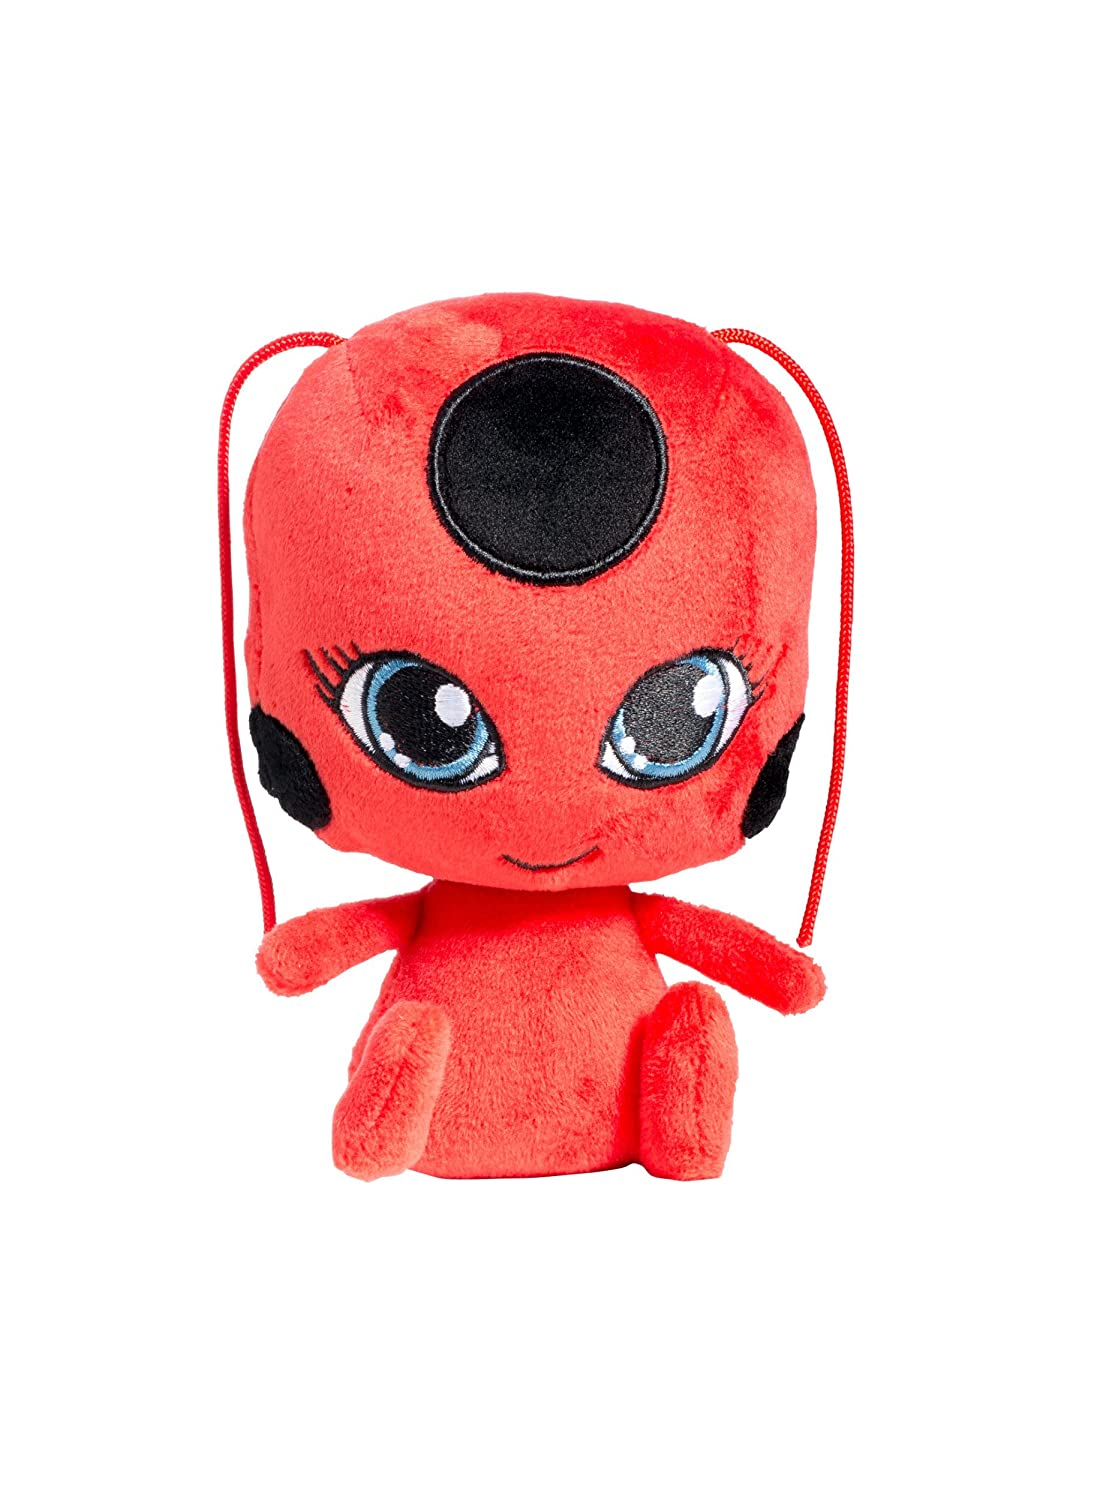 Miraculous 6-Inch Plush Tikki Bandai America Incorporated 39831